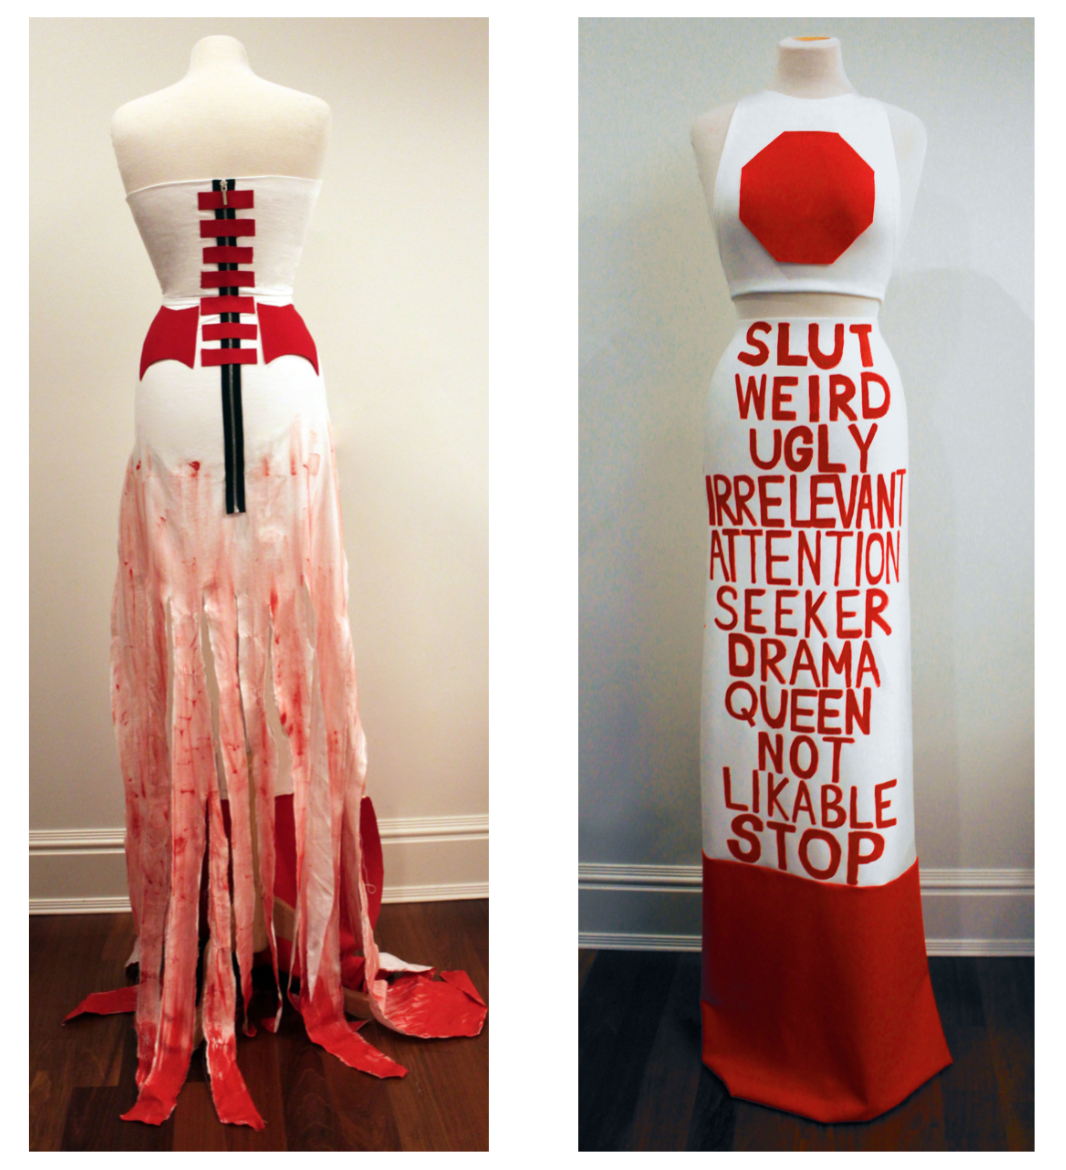 Pieces Created - These are two pieces from the collection that I proceeded to construct with bedsheets, fabric, and paint